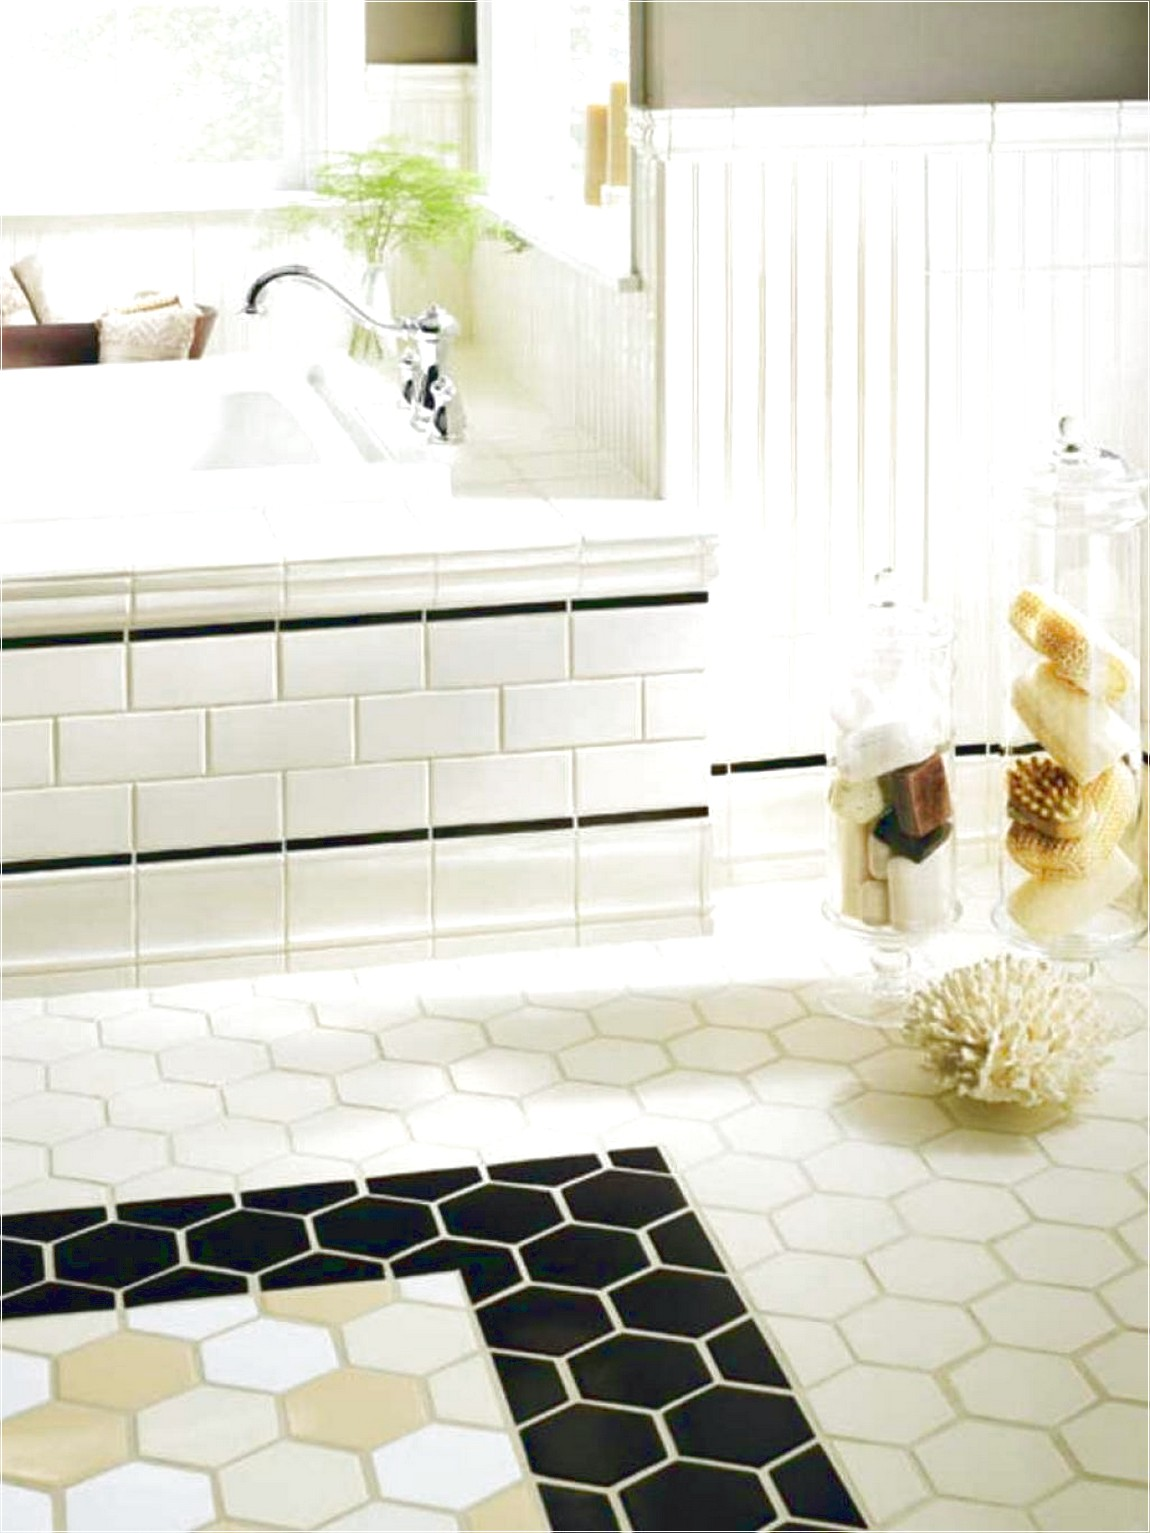 popular-types-of-bathroom-wall-tiles-nice-and-attractive-with-hexagonal-pattern-cerami-for-floor-Copy